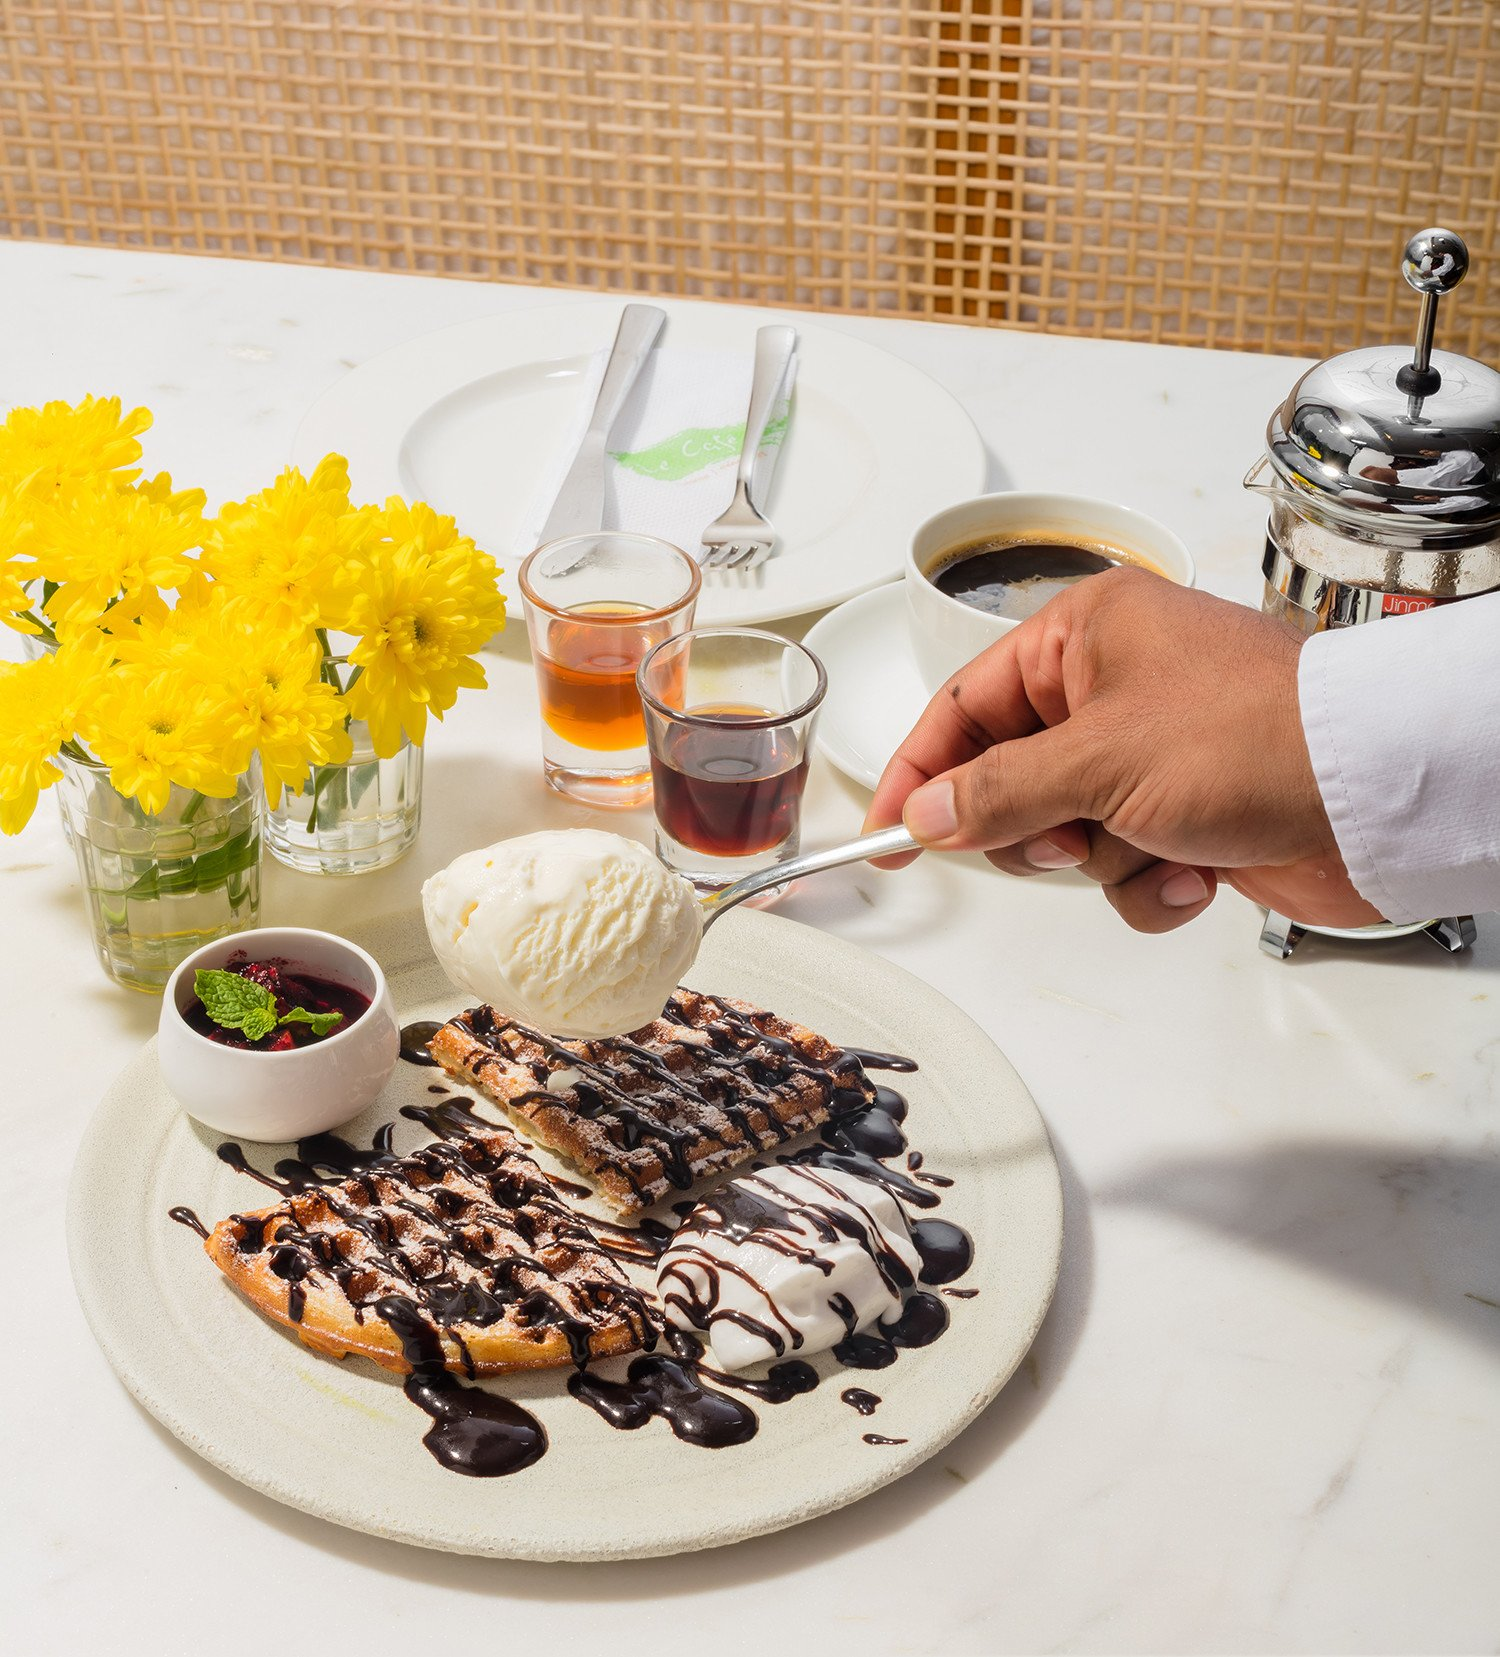 World Nutella Day: 5 Places Where You Can Indulge In Your Guilty Pleasure And Treat Your Nutella Tooth